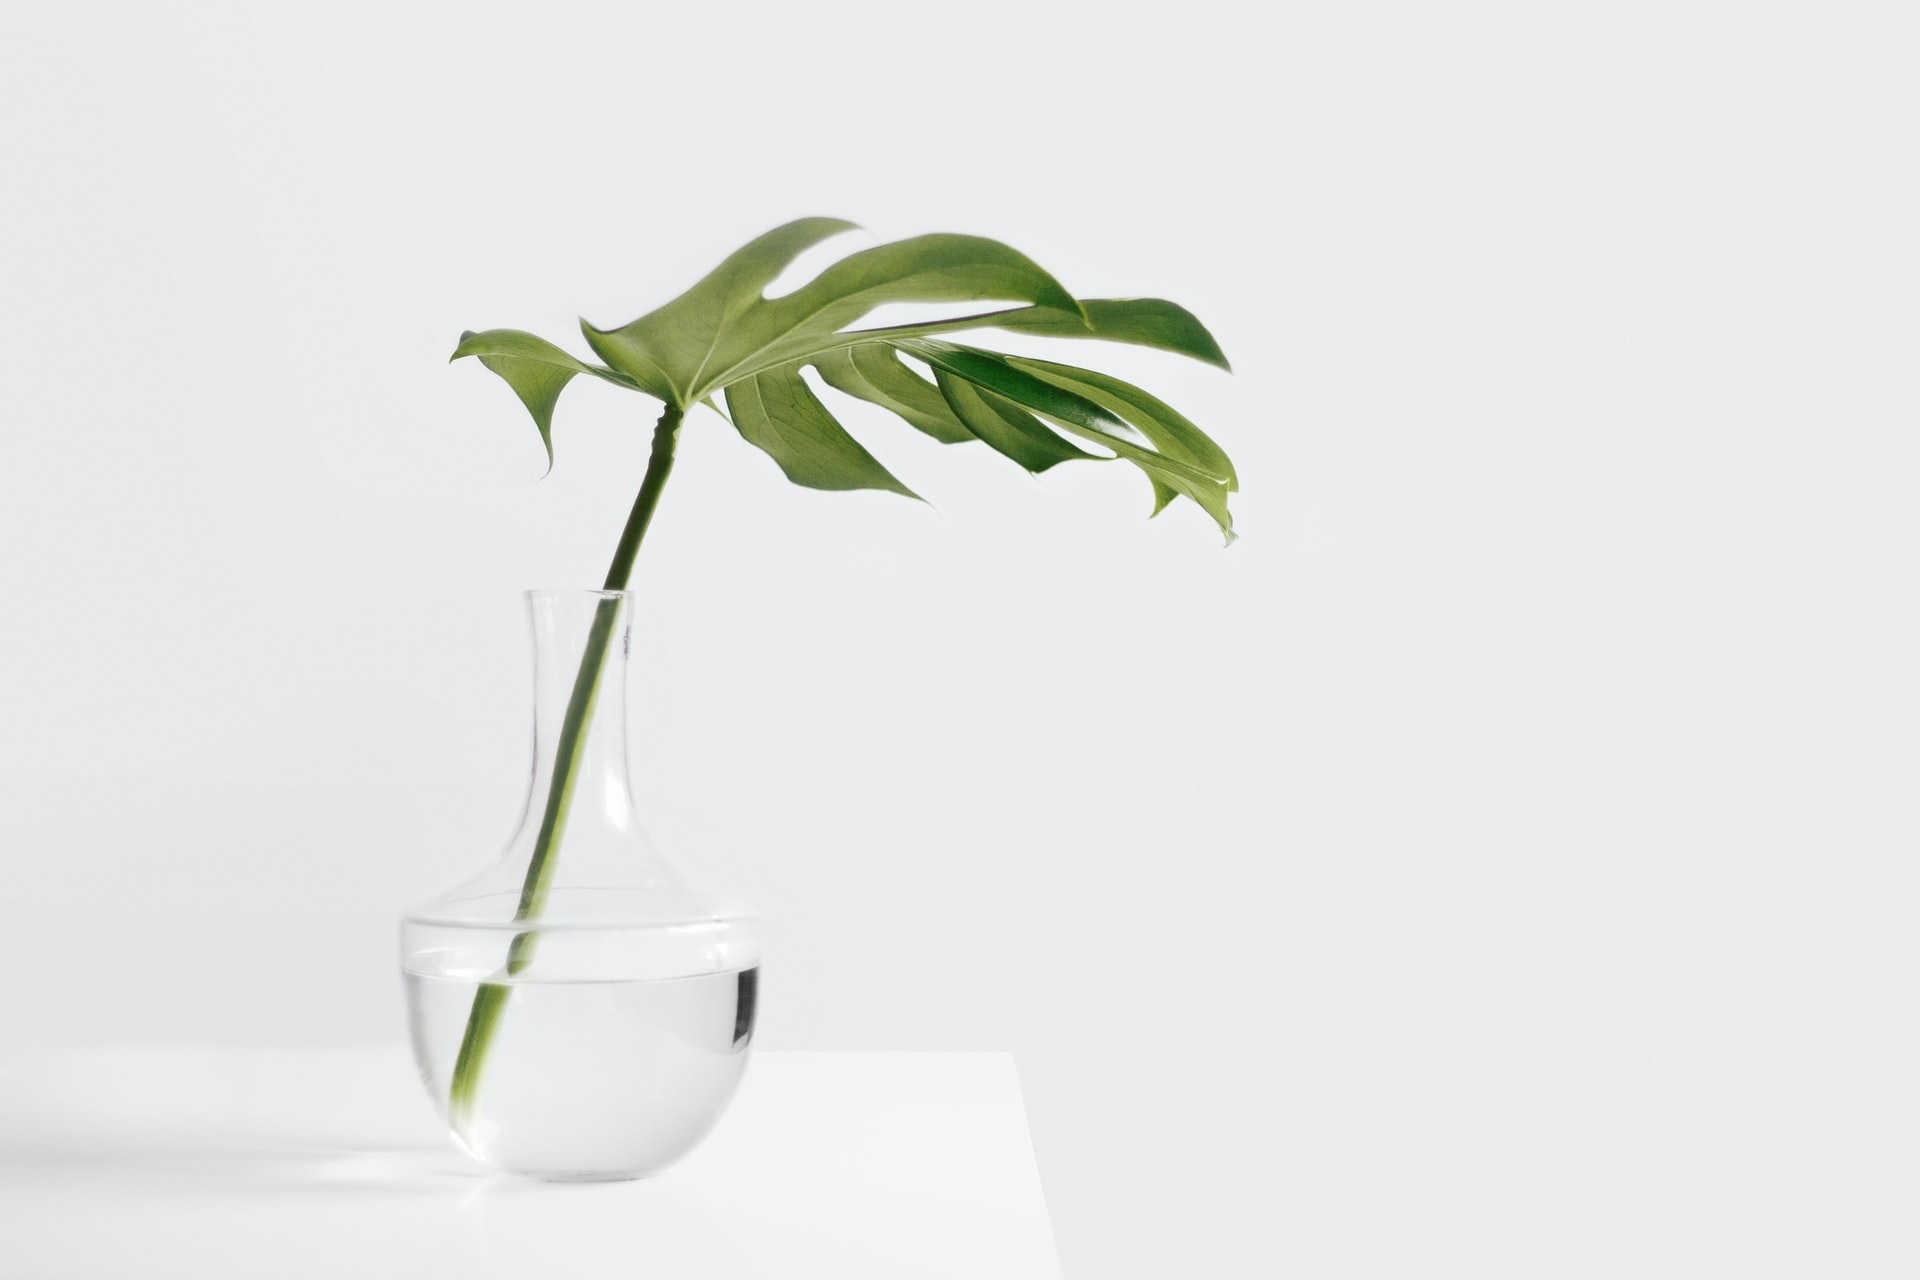 An image of a fiddle-leaf fern in front of a shite background